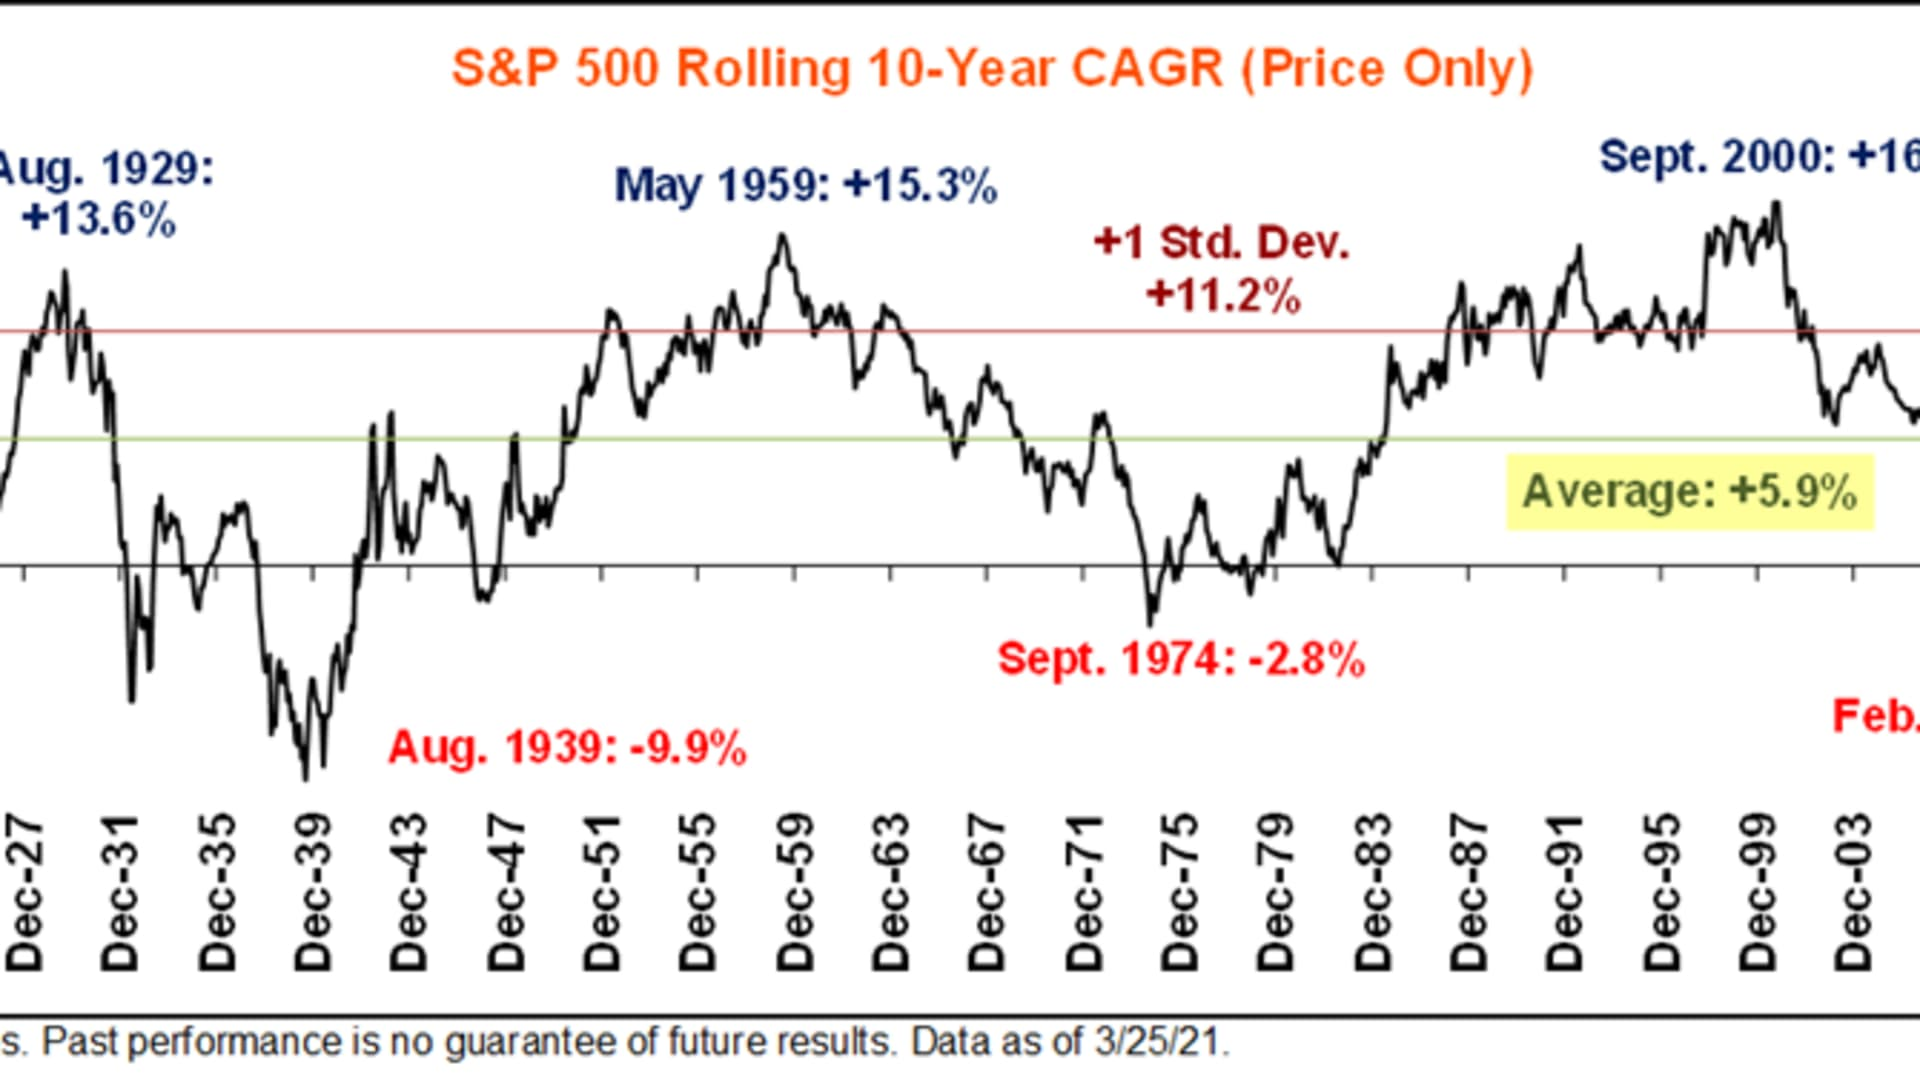 Bull markets can last years before they die, but over rolling 10-year periods going back a century, about 6% compound annual growth from the S&P 500 is the norm.